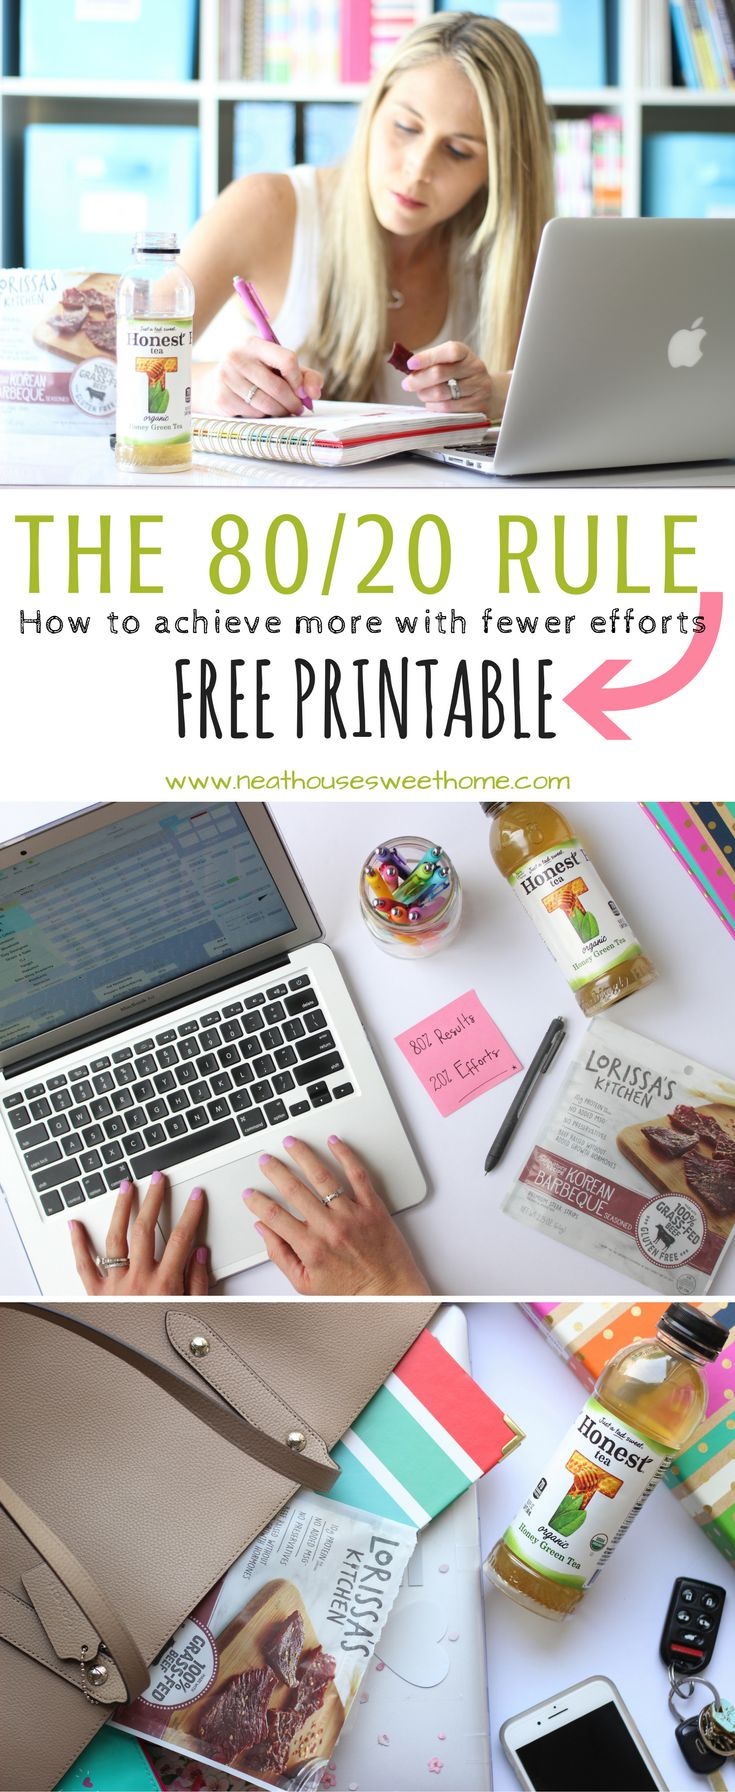 Ever wonder why the more you work, the fewer results you achieve? The Pareto Principle or 80/20 rule, can explain that. Use it to improve your productivity. #SnackHonestly #ad